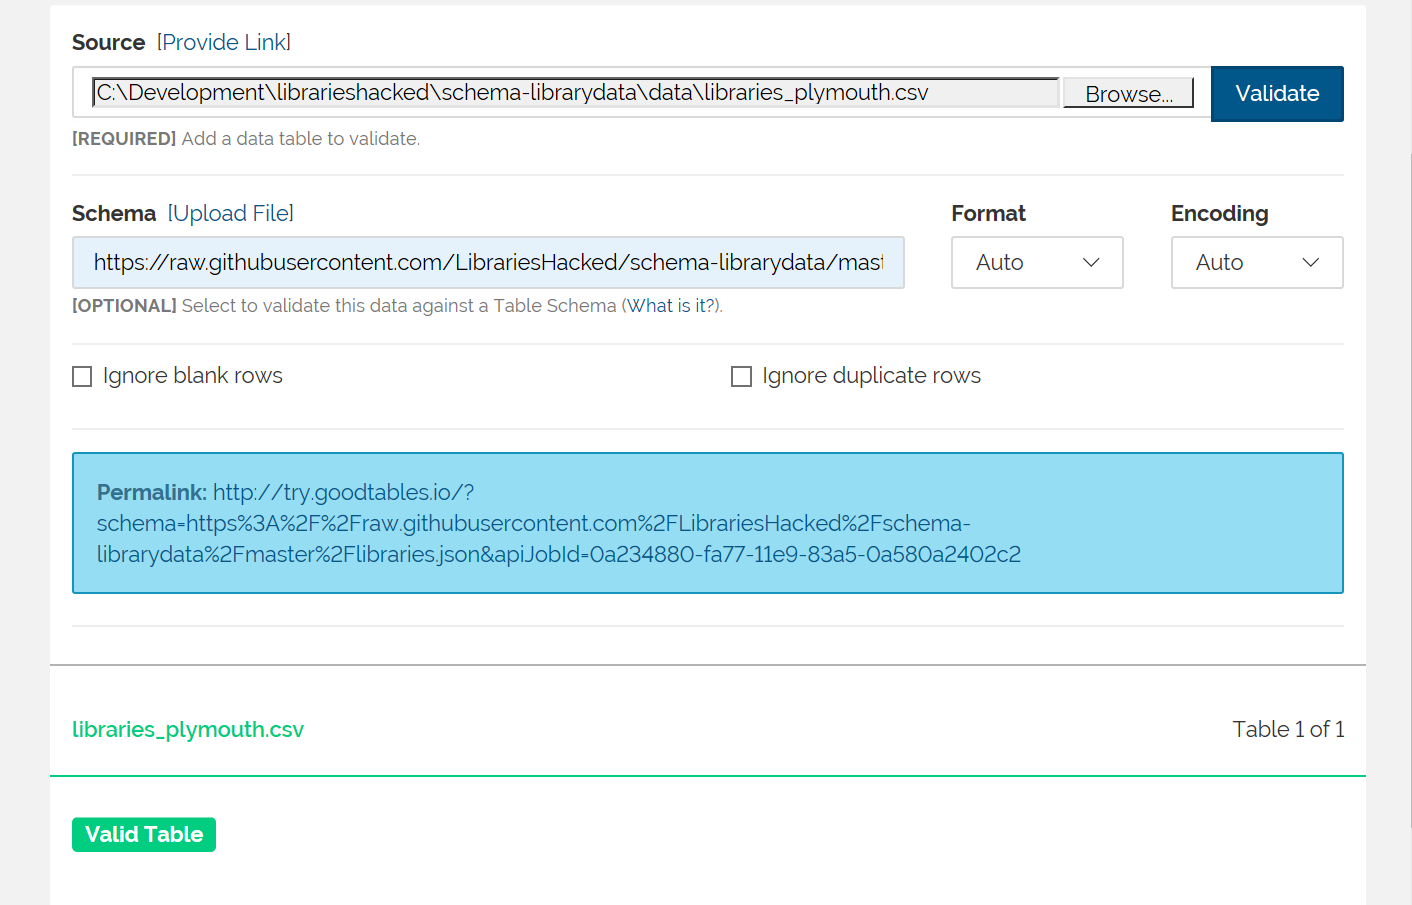 A screenshot of the Good Tables tool, reporting successful data validation